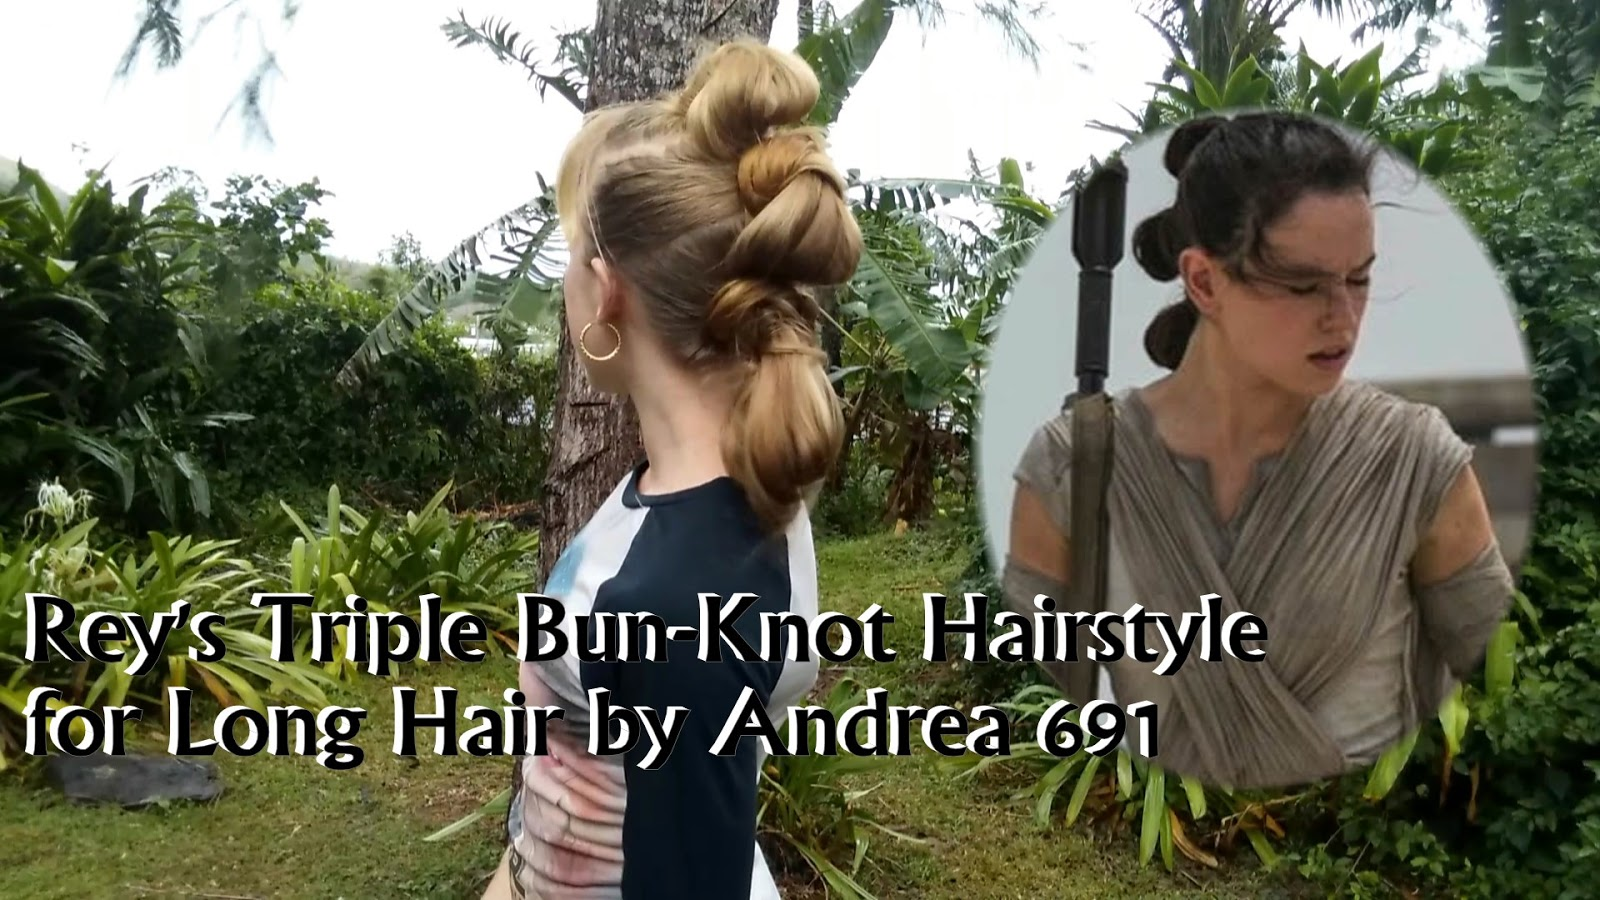 Braids Hairstyles For Super Long Hair New Youtube Video Reys